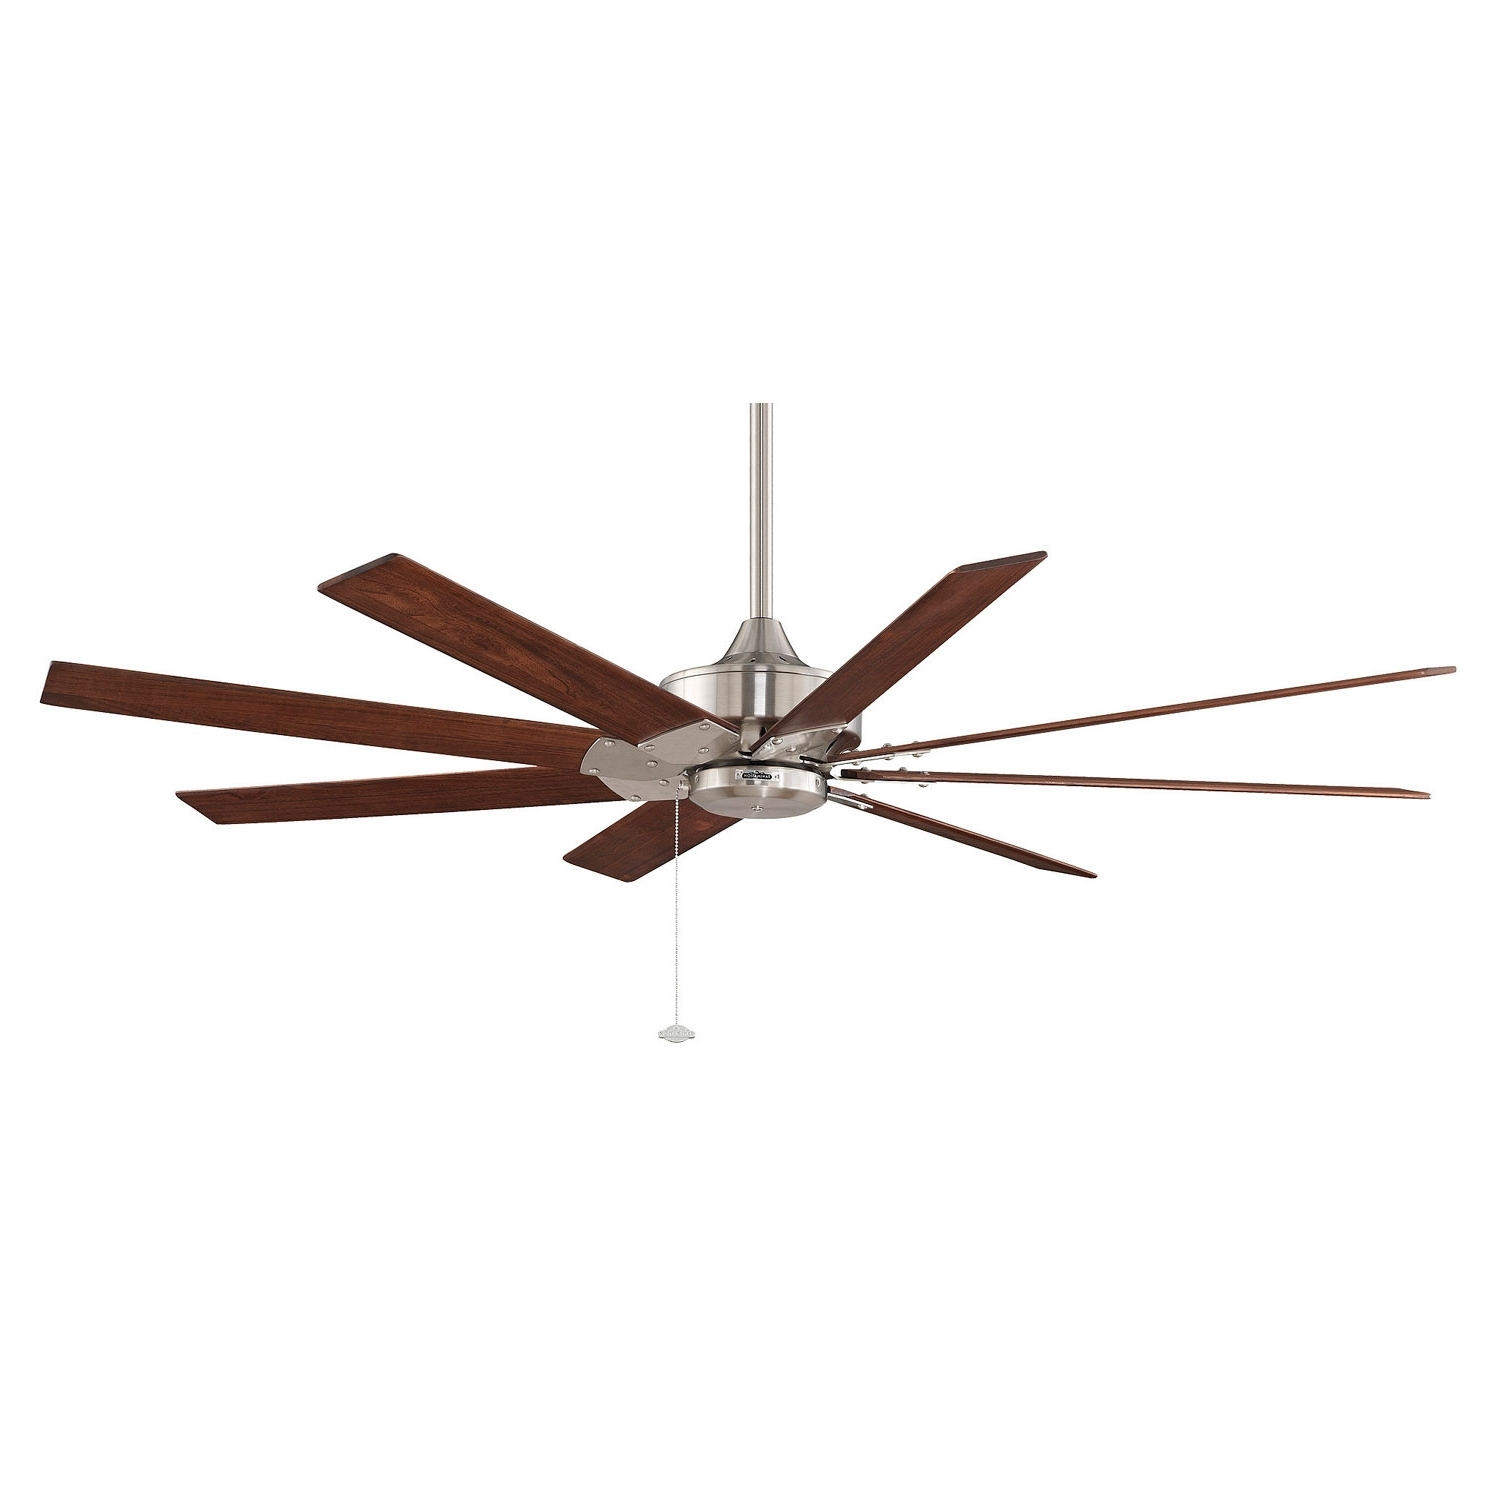 Brushed Nickel Outdoor Ceiling Fans Within Popular Fanimation Levon Brushed Nickel 63 Inch Energy Star Ceiling Fan With (View 11 of 20)